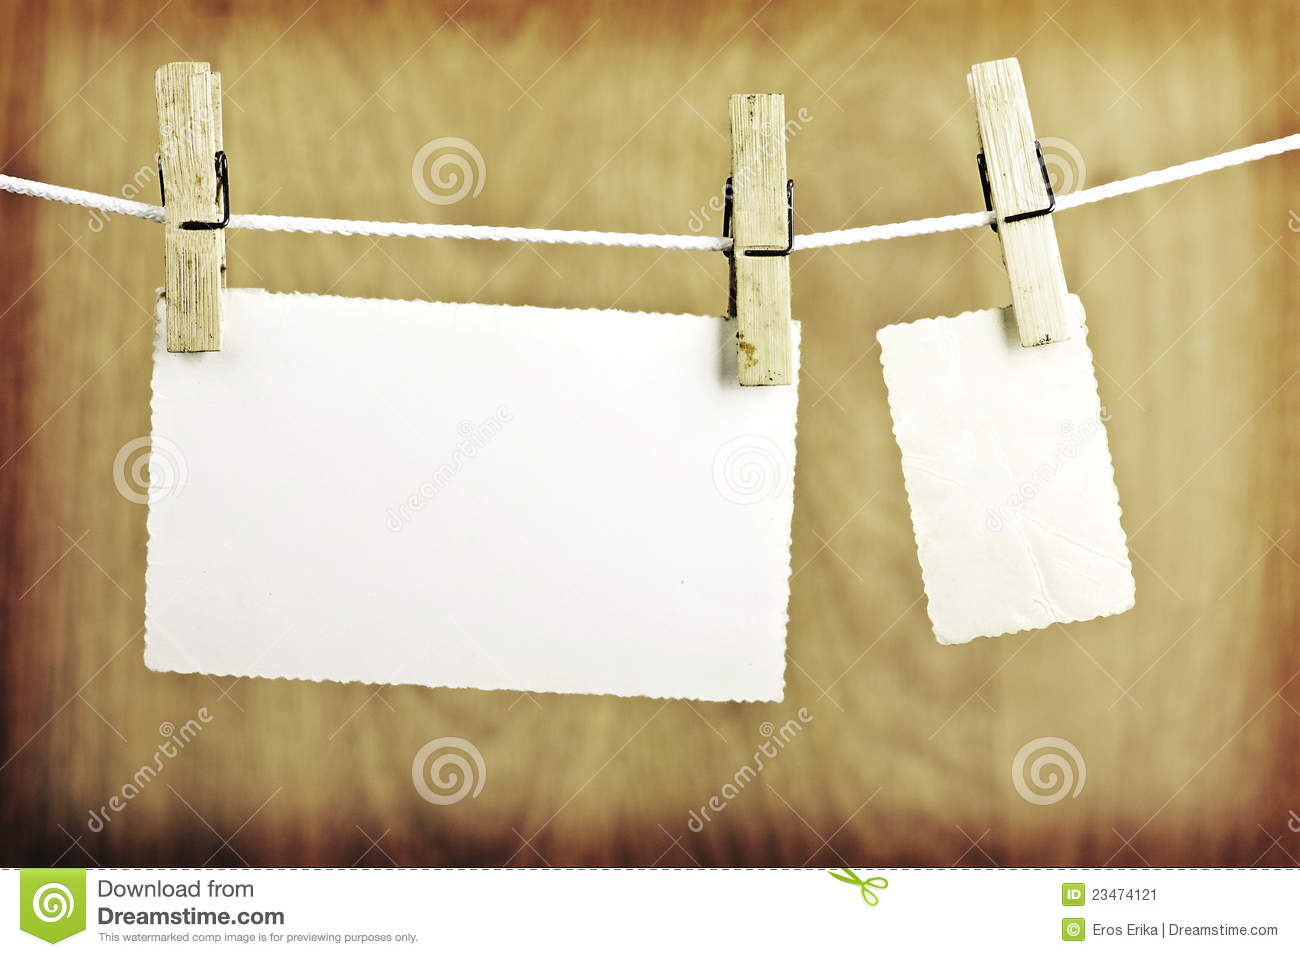 photos hanging on a colthesline stock image image 23474121